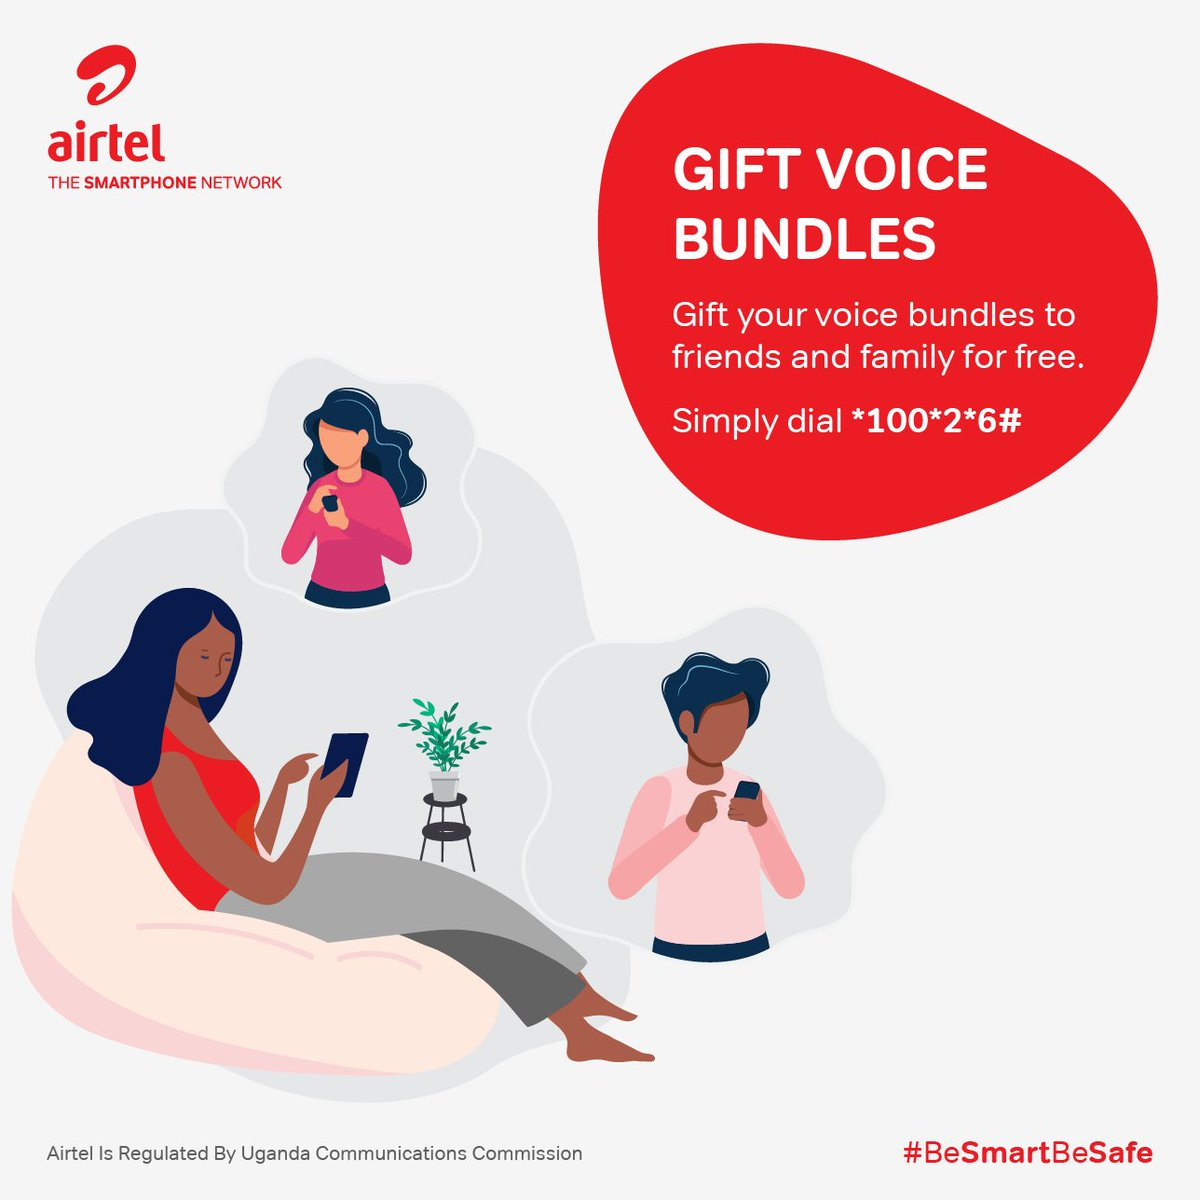 Every gift to friends is a wish for their happiness. Gift Airtel voice bundles FREE of charge and keep the connections alive. Dial *100*2*6# and get started. #BeSmartBeSafe